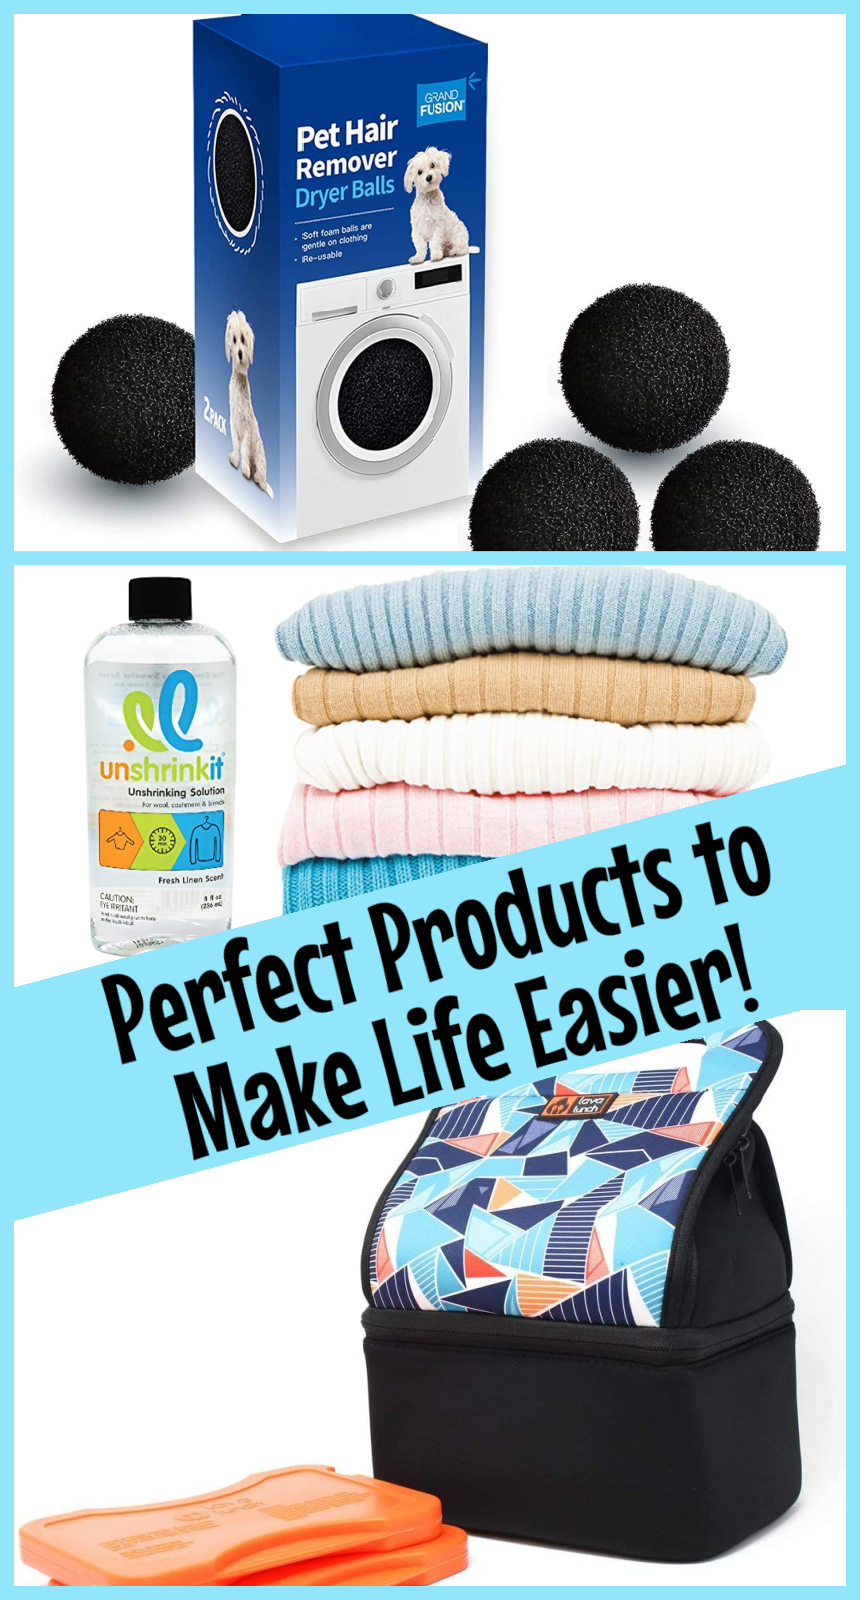 3 New Products to Make Your Life Easier- From Laundry to Lunch! #SpringIntoSummerFun